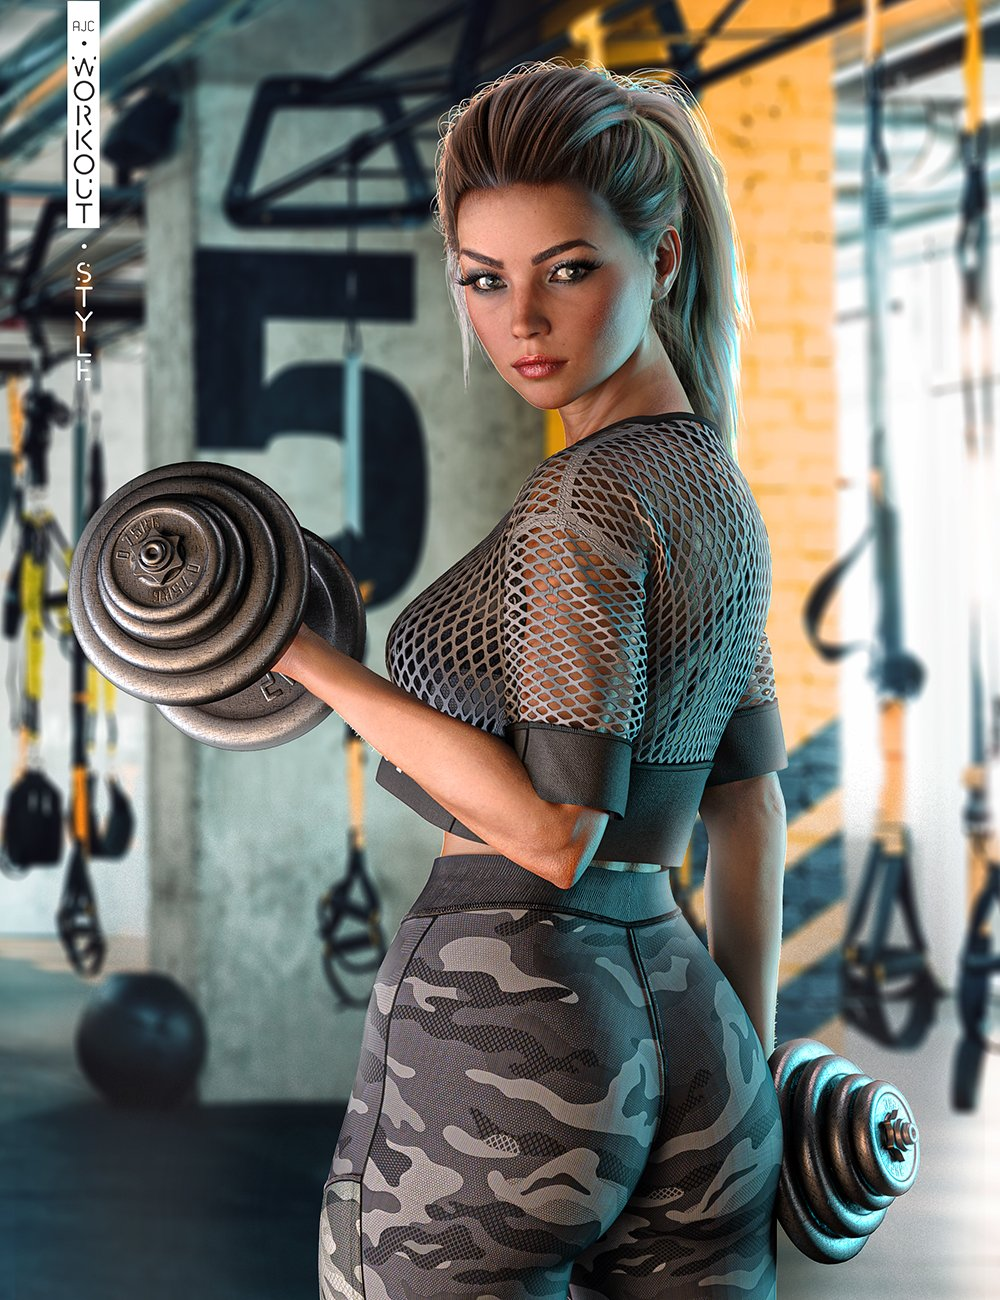 AJC Workout Style Outfit and Dumbbells for Genesis 8 Female(s) by: adeilsonjc, 3D Models by Daz 3D